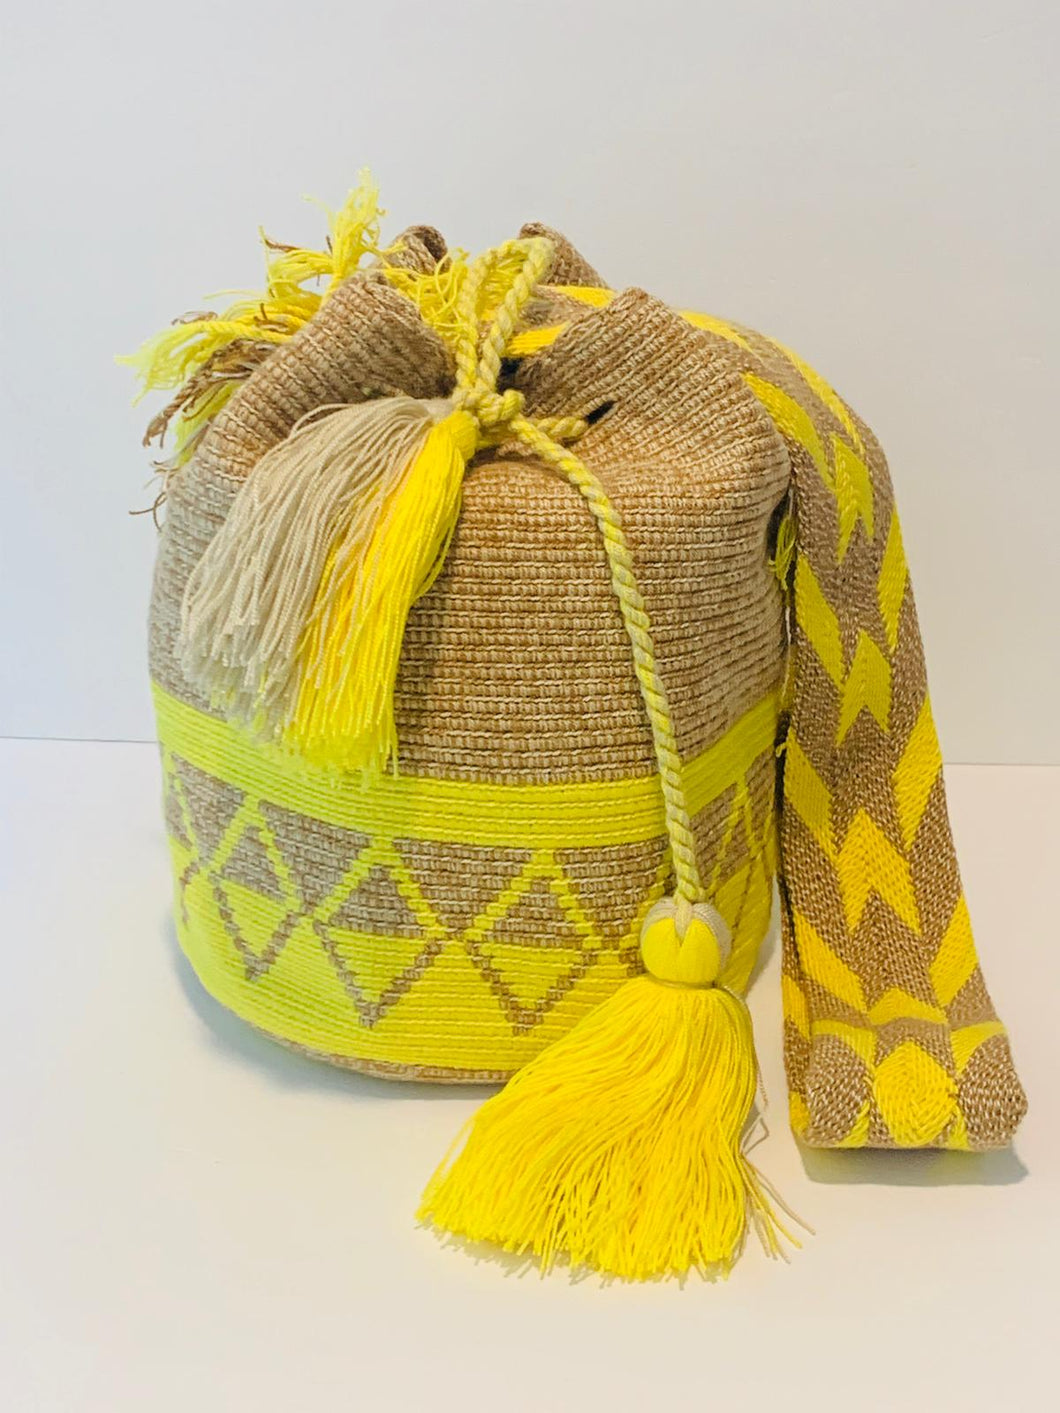 The Organic Wayuu Bag